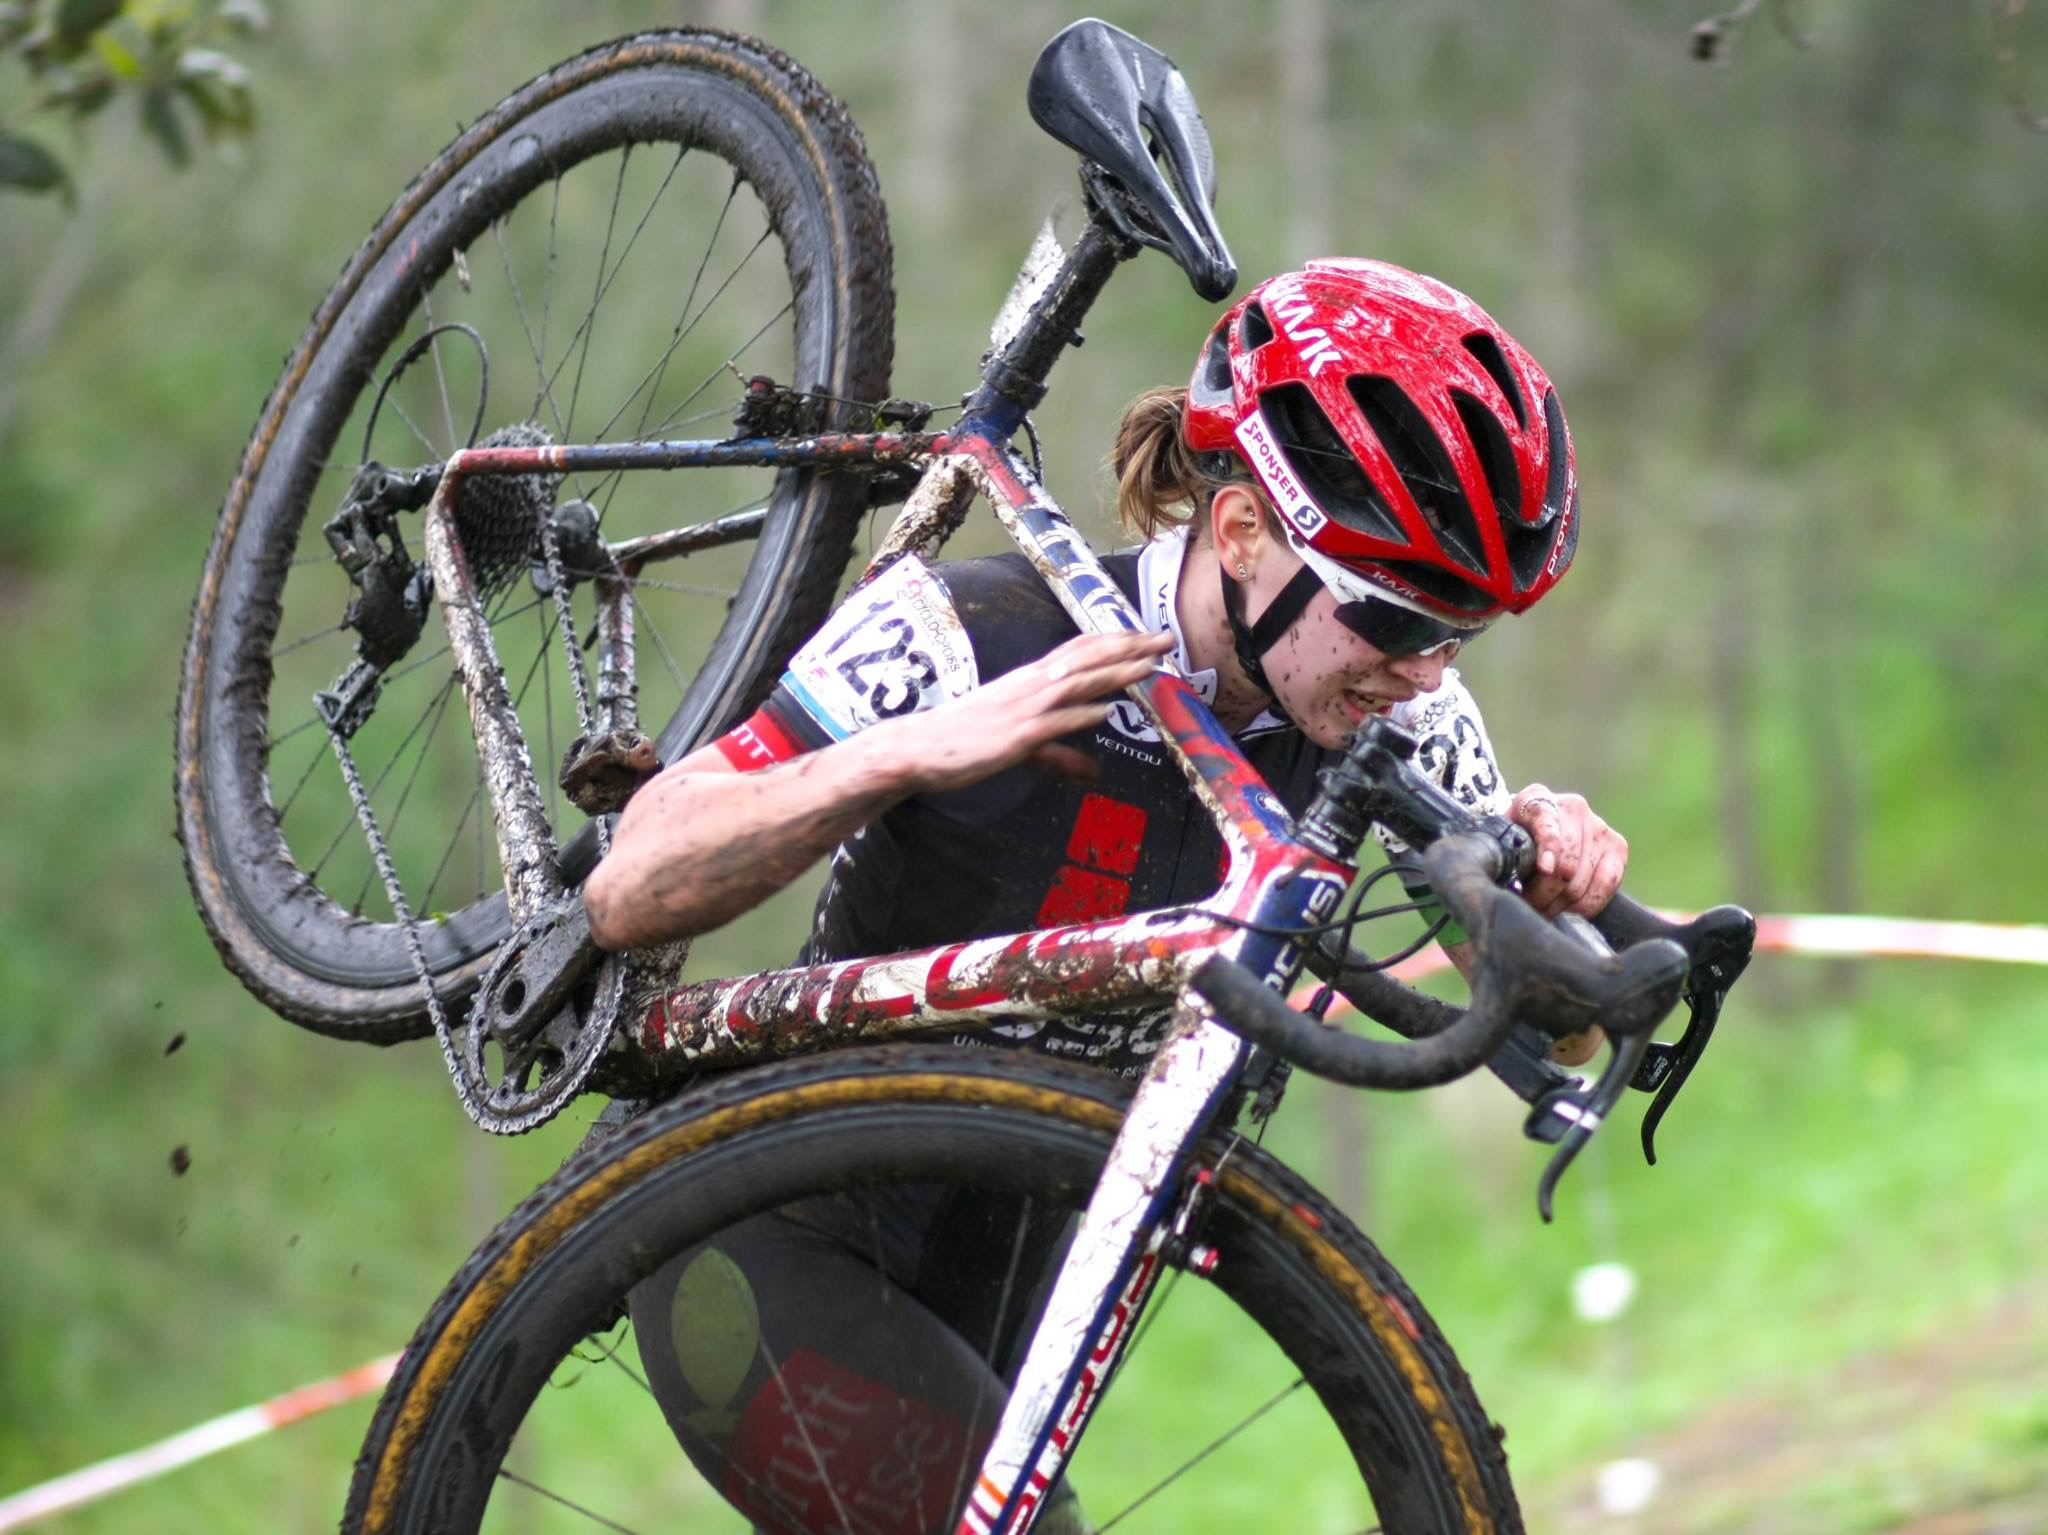 Announcing Stacey Riedel as a Cyclocross Minded Ambassador!